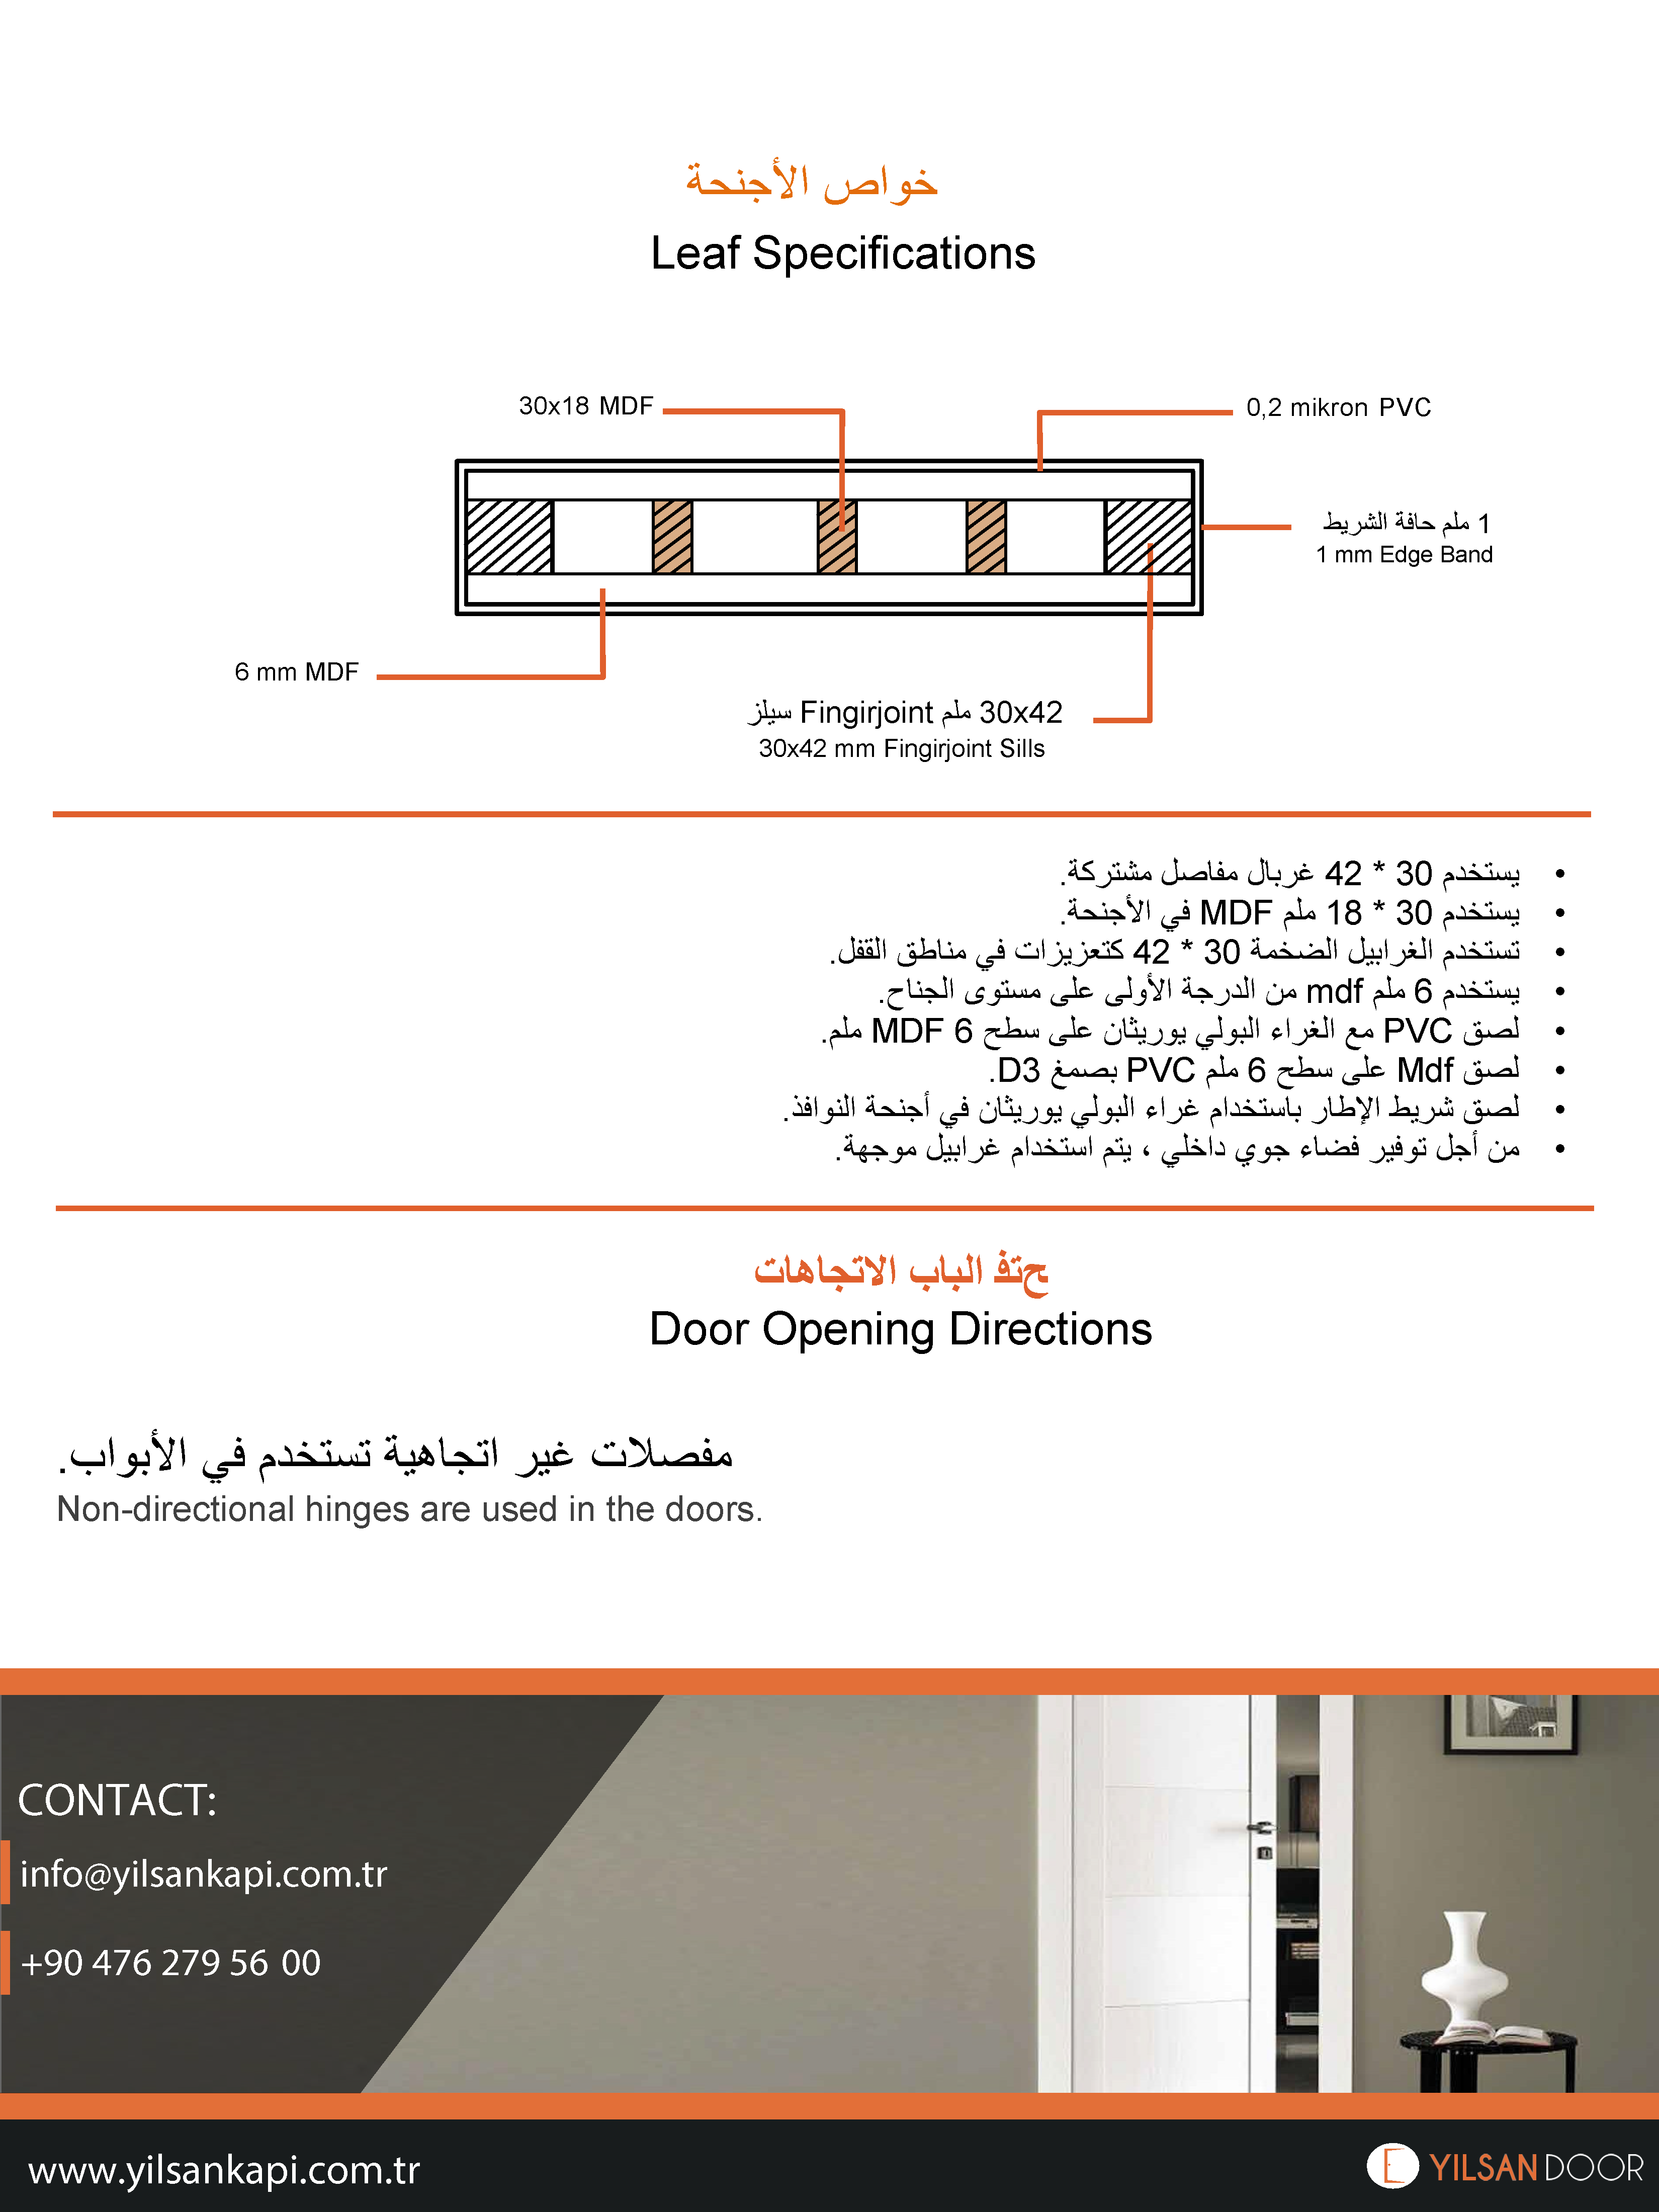 Yilsan_Door_Technical_Specifications_AR_Page_4